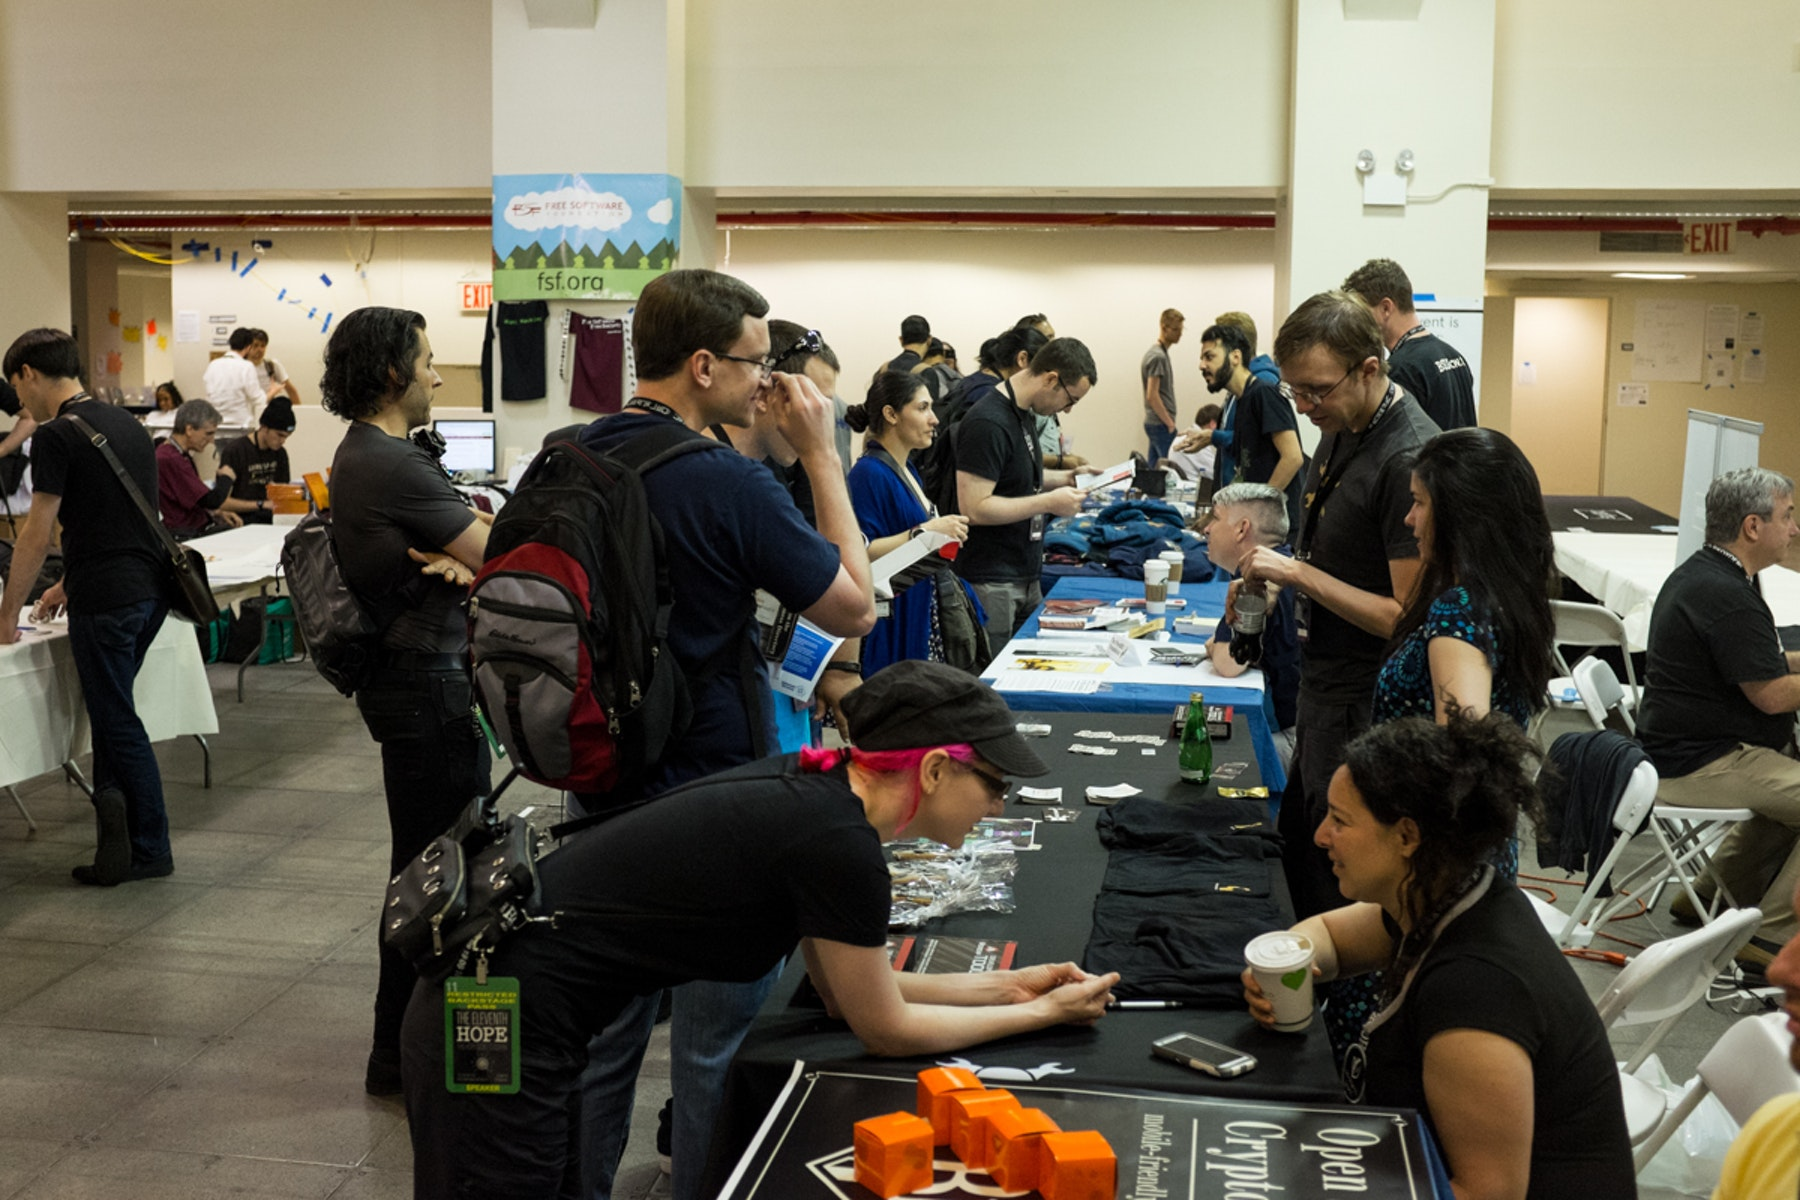 Attendees chat over various booths in HOPE's main concourse. Black is a popular color.